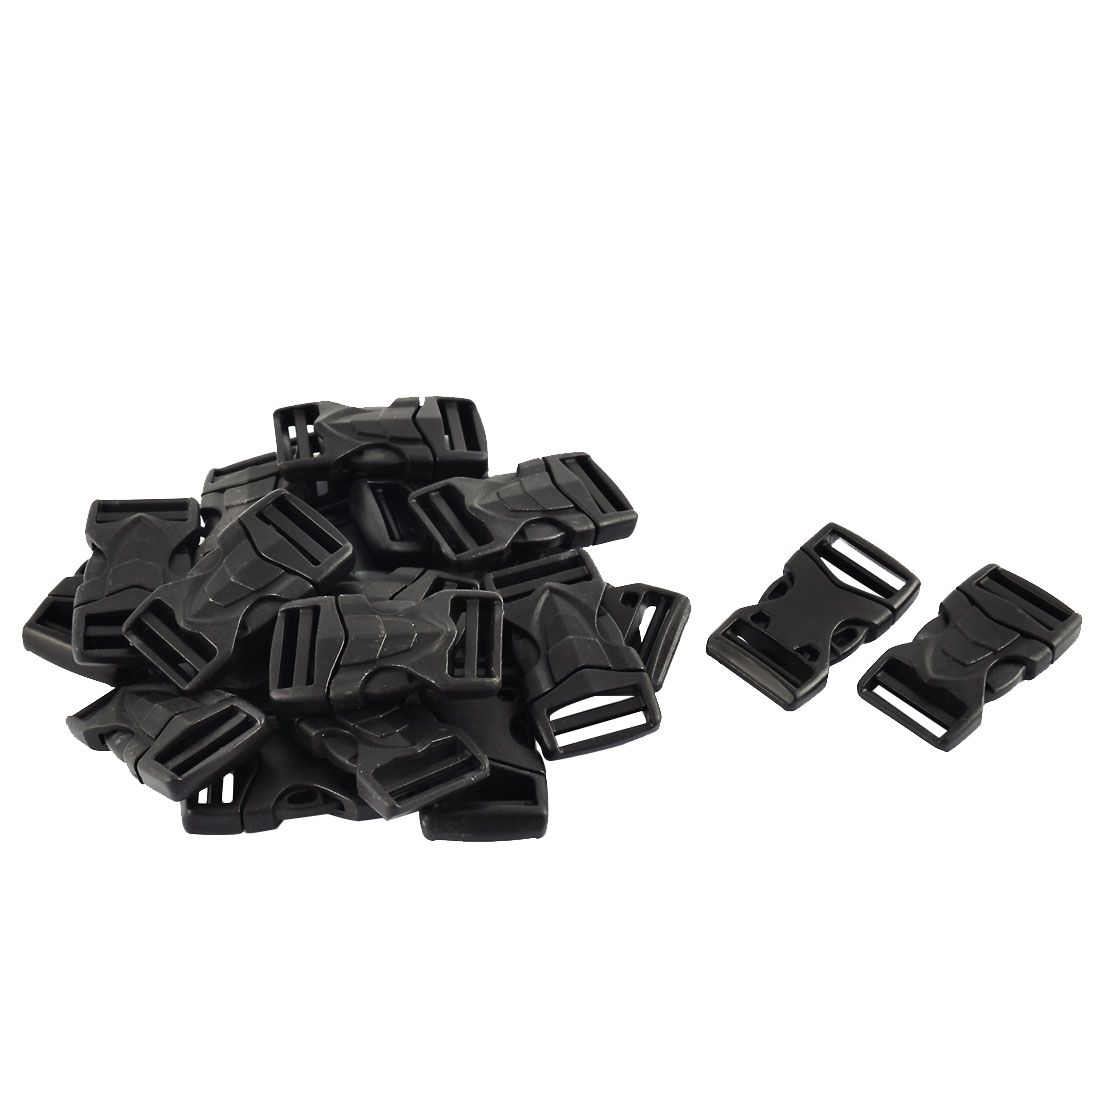 Bag Strap Plastic Side Quick Release Buckle Clip Black 21mm Width 20pcs